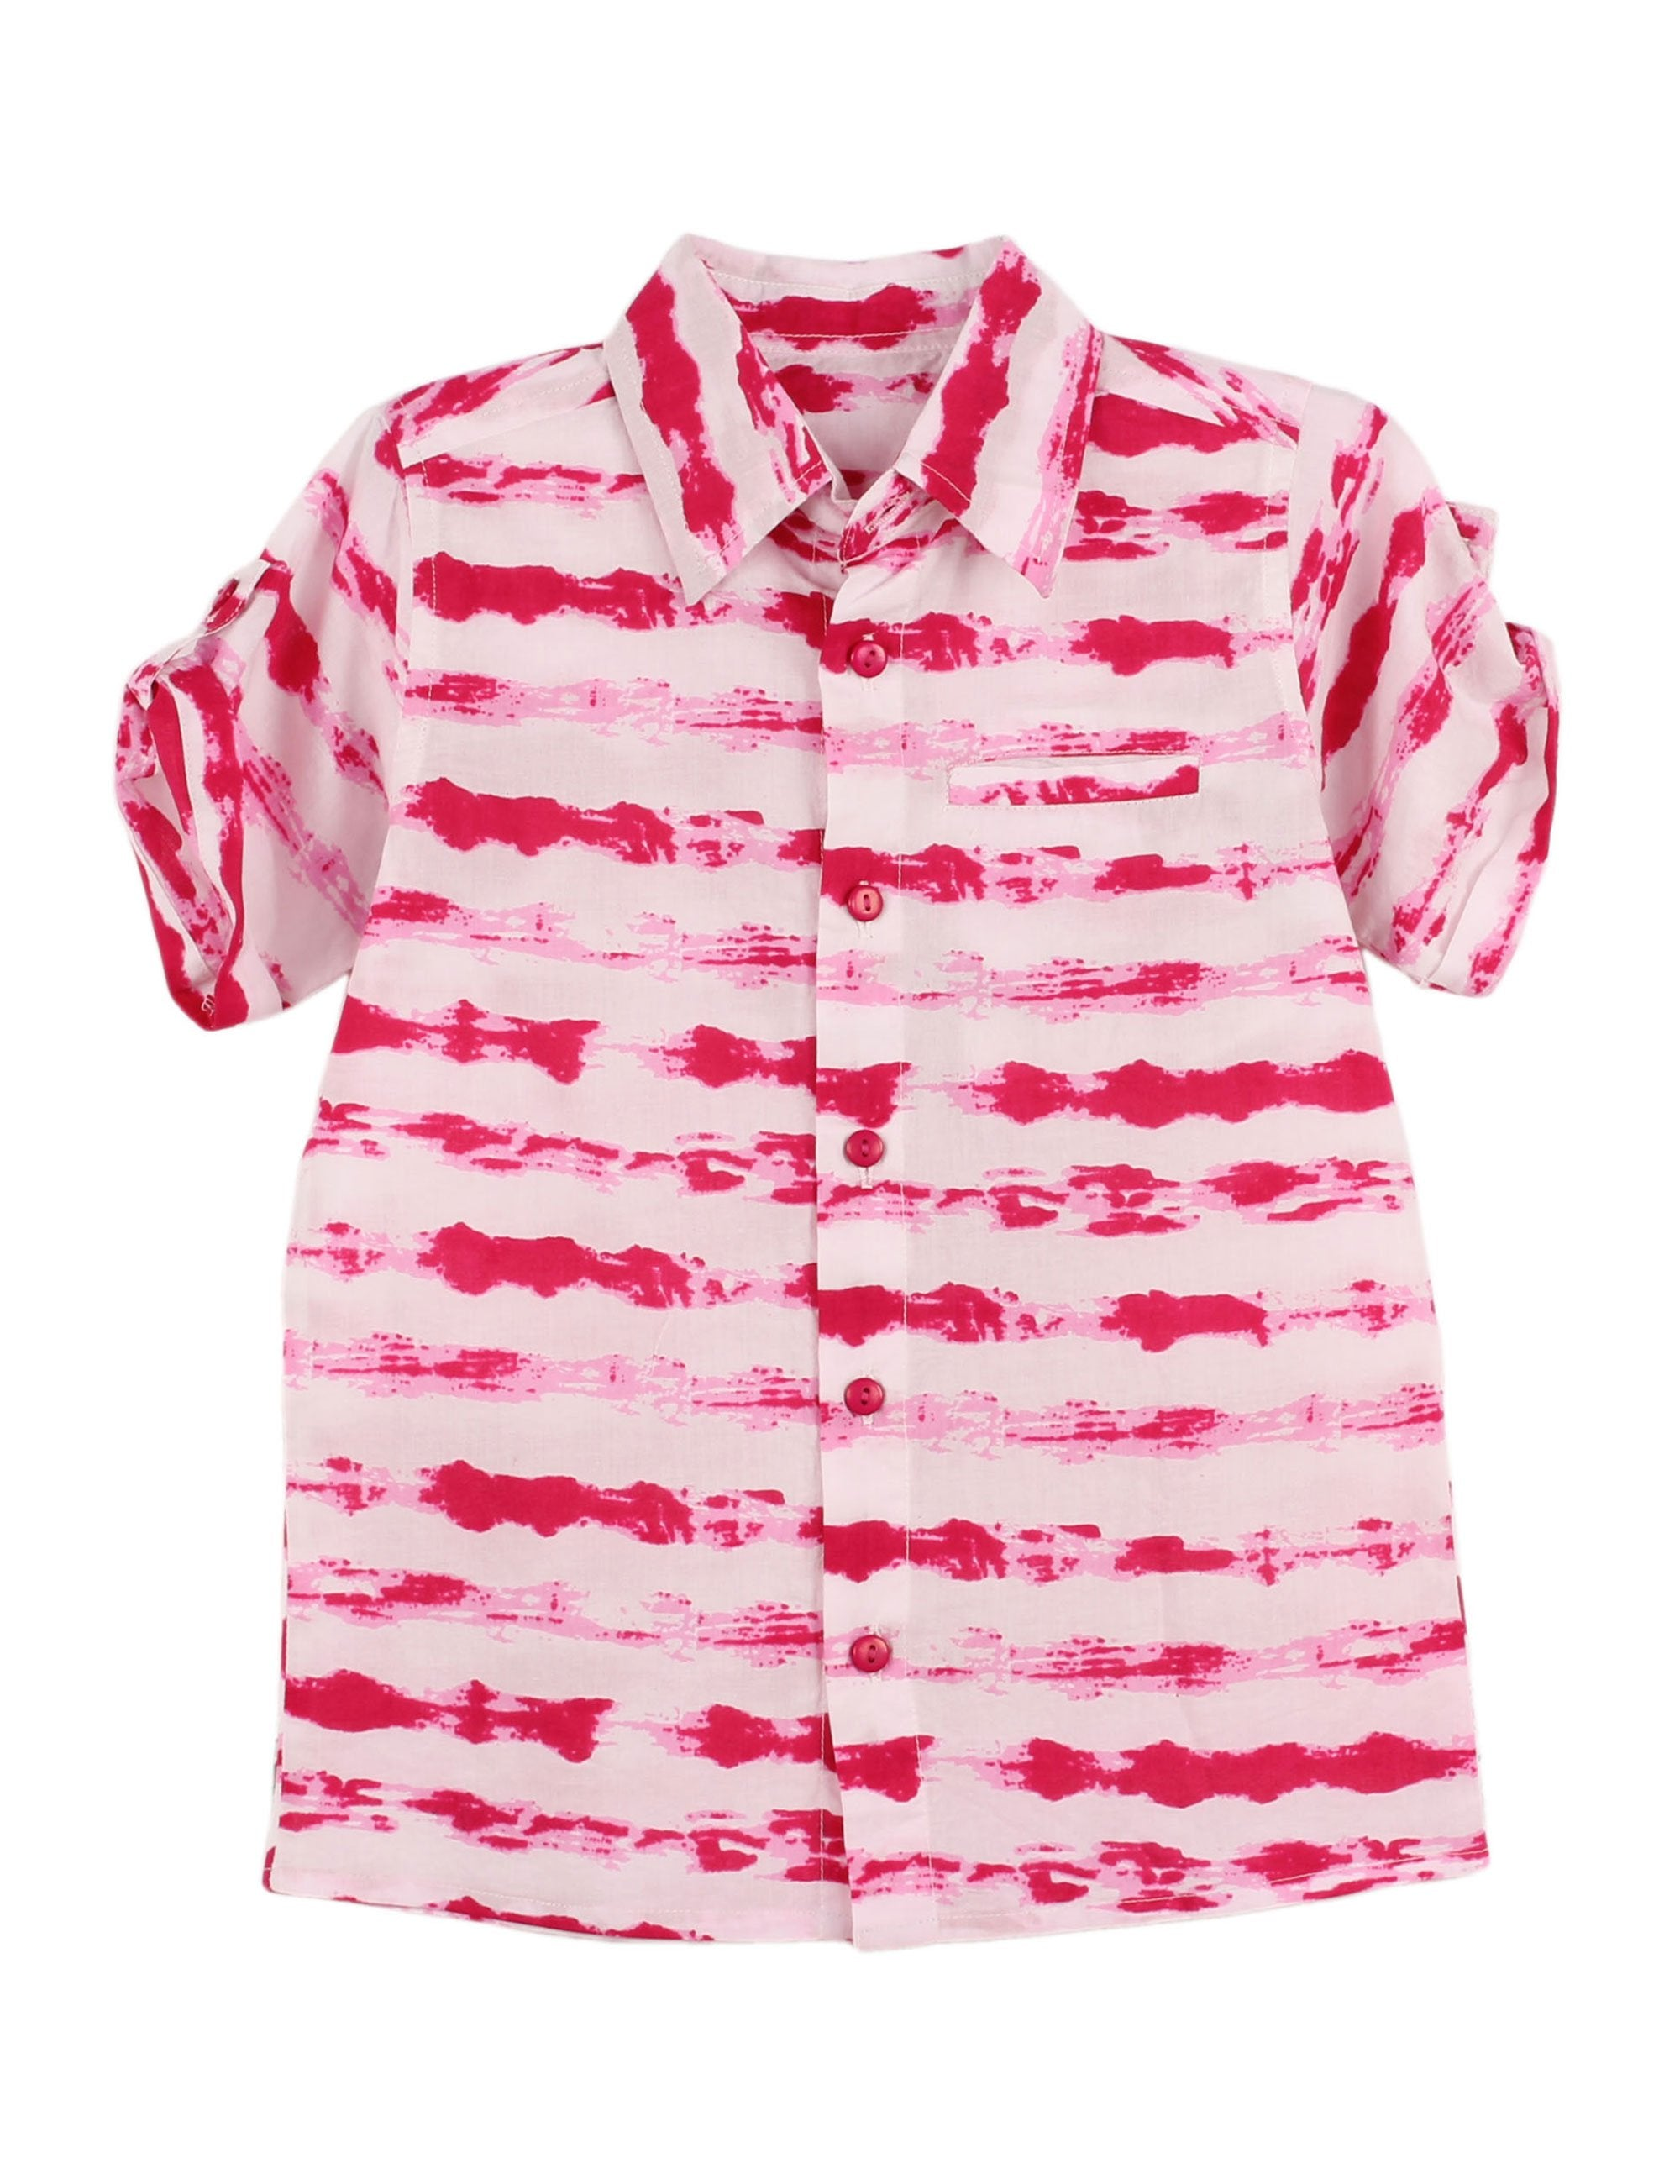 Tie Dye Cotton Shirt in Pink and White for Boys